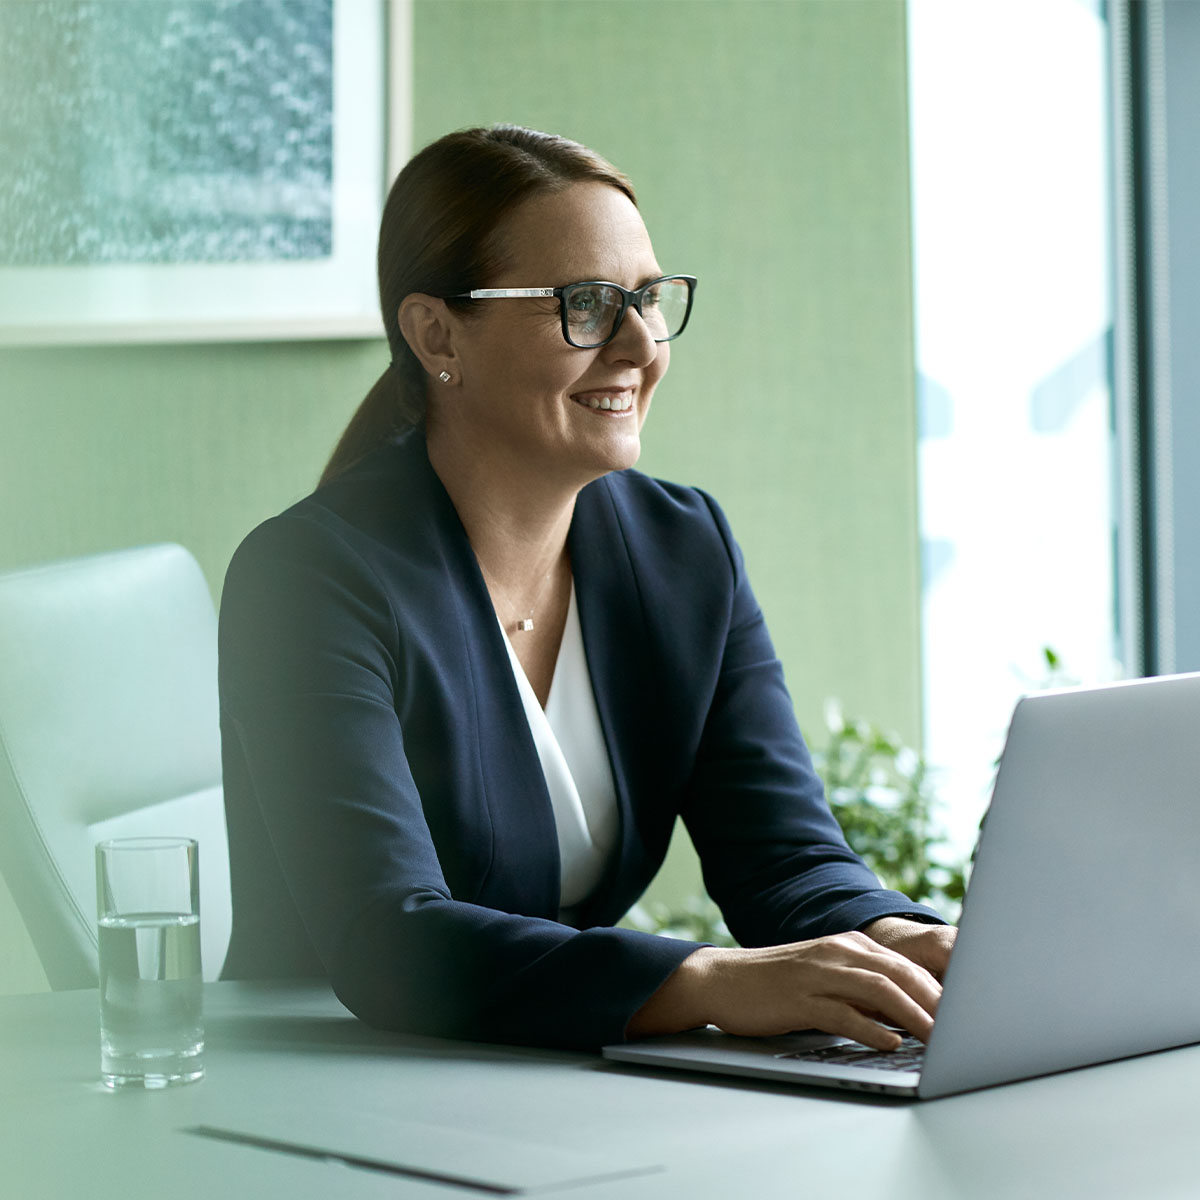 A businesswoman with glasses sitting at a desk working on laptop and smiling